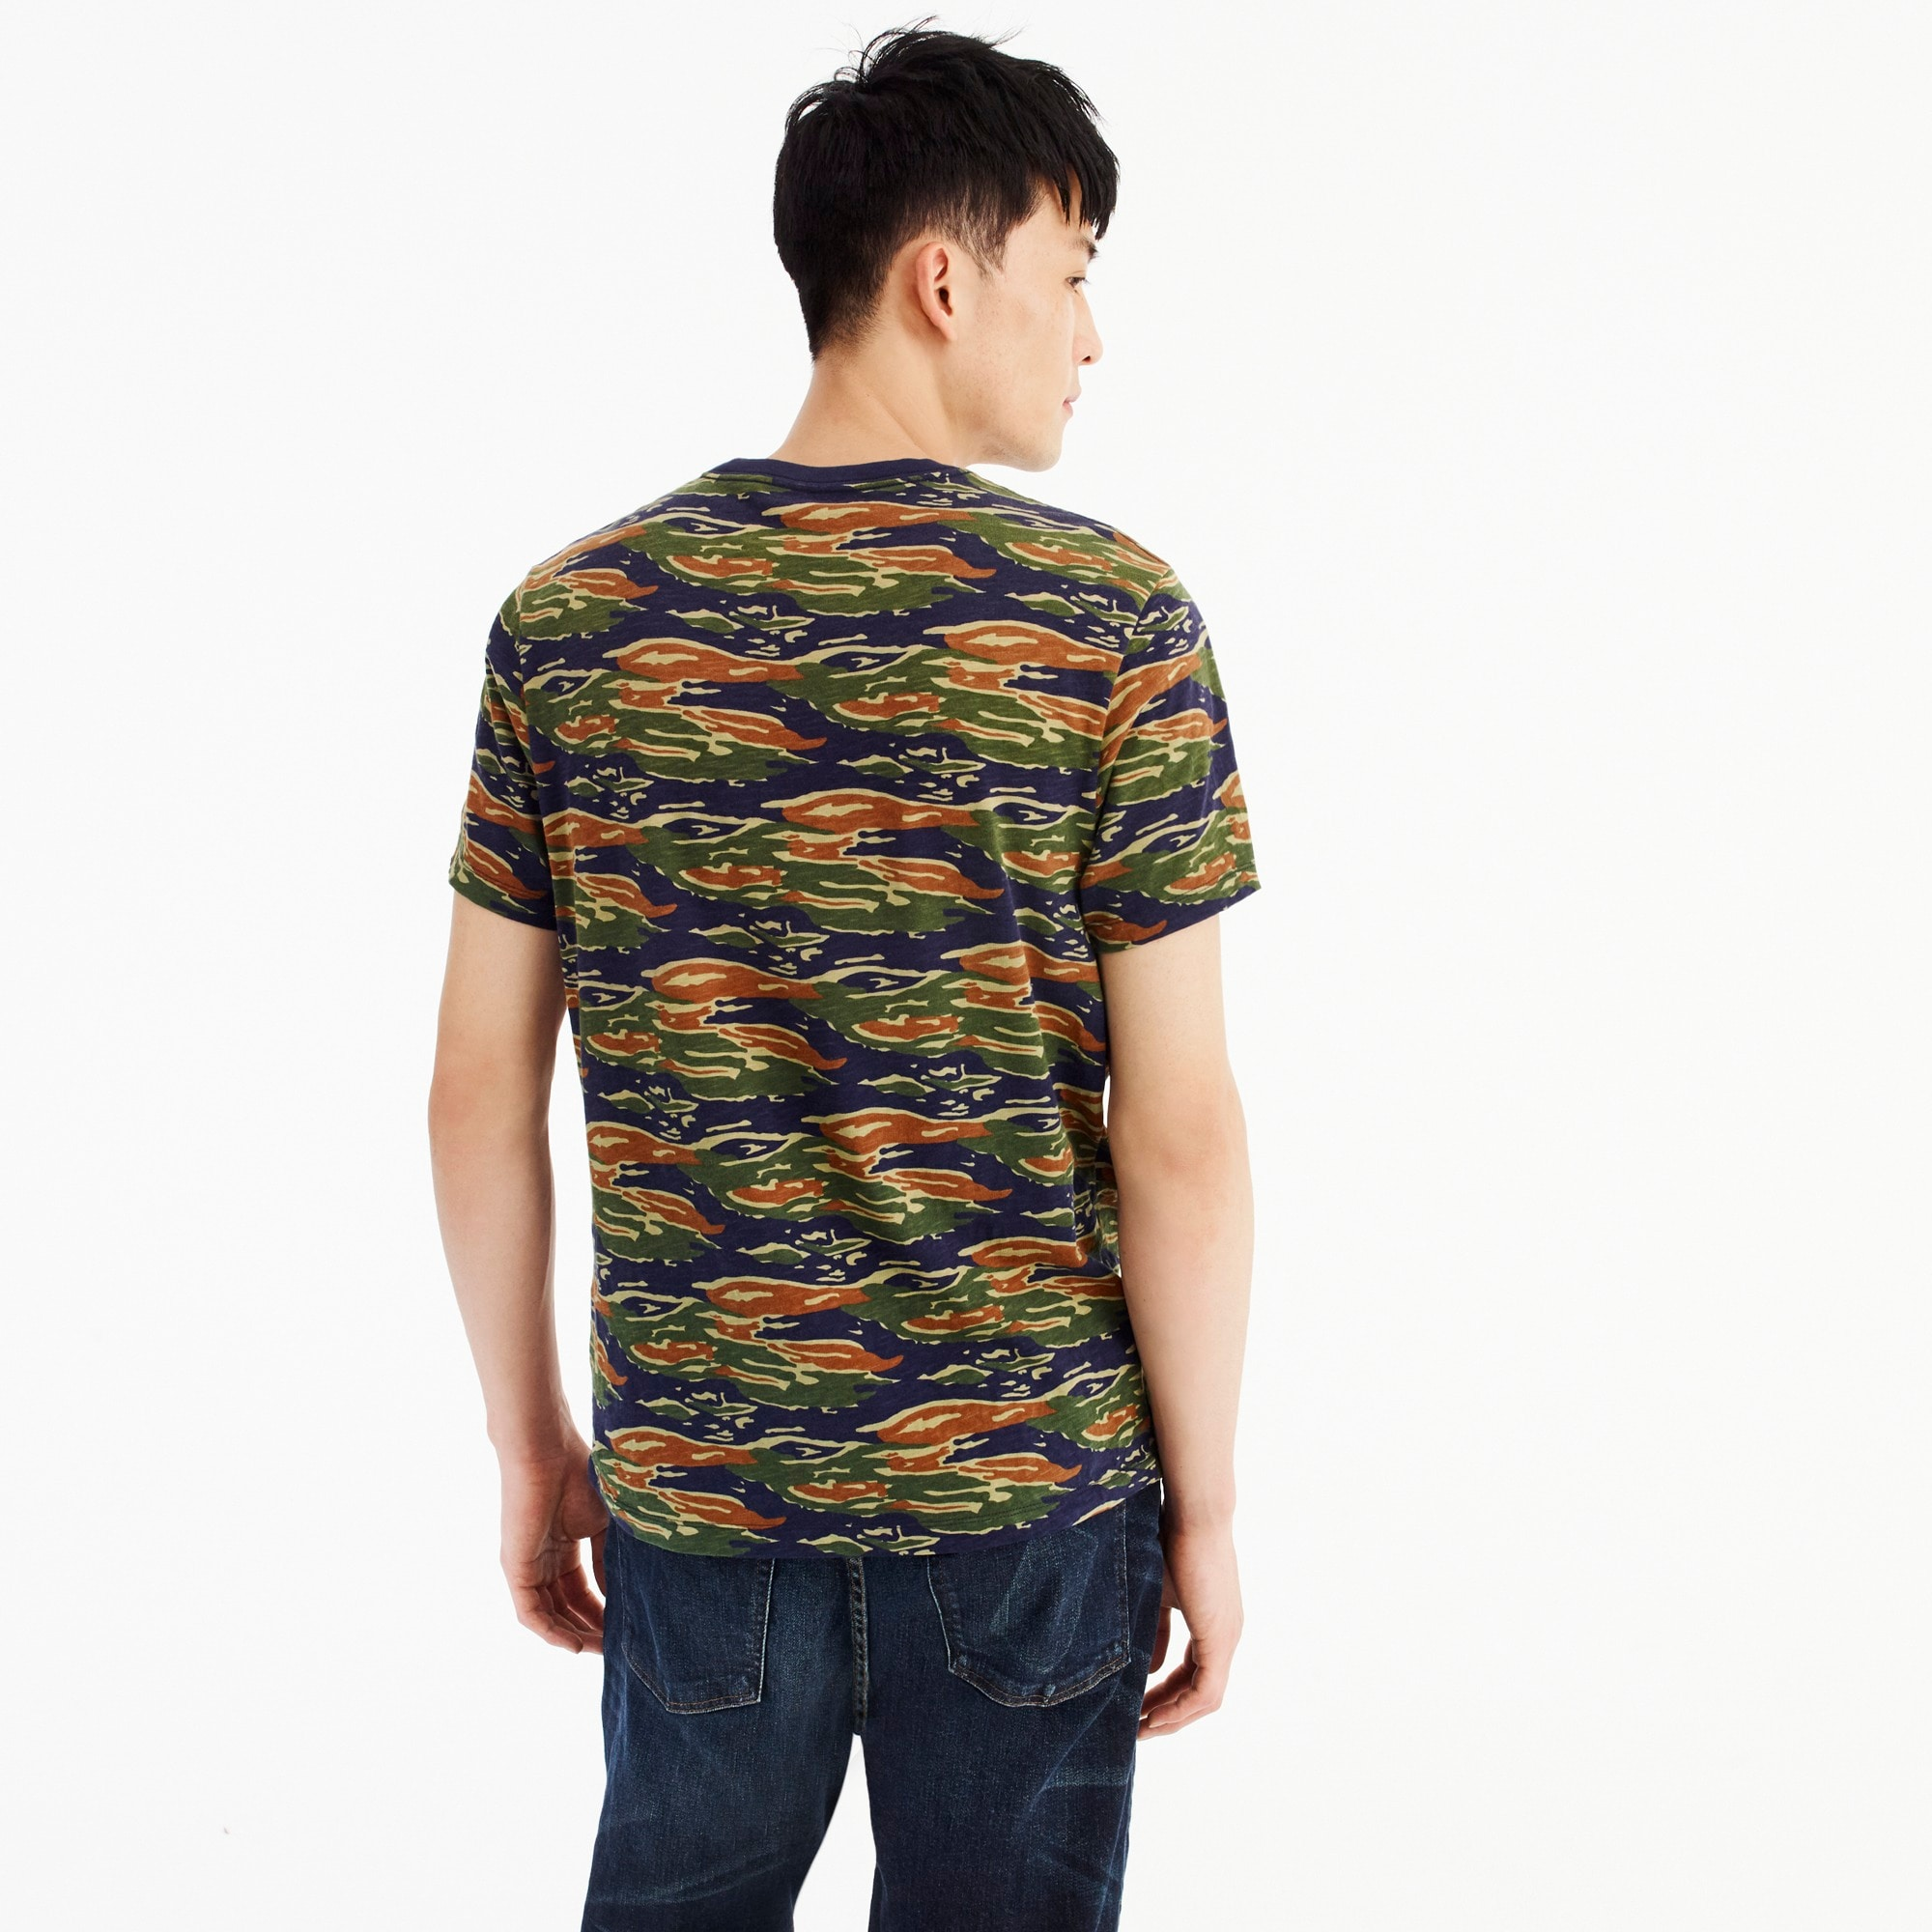 Broken-in cotton jersey T-shirt in tiger stripe camo